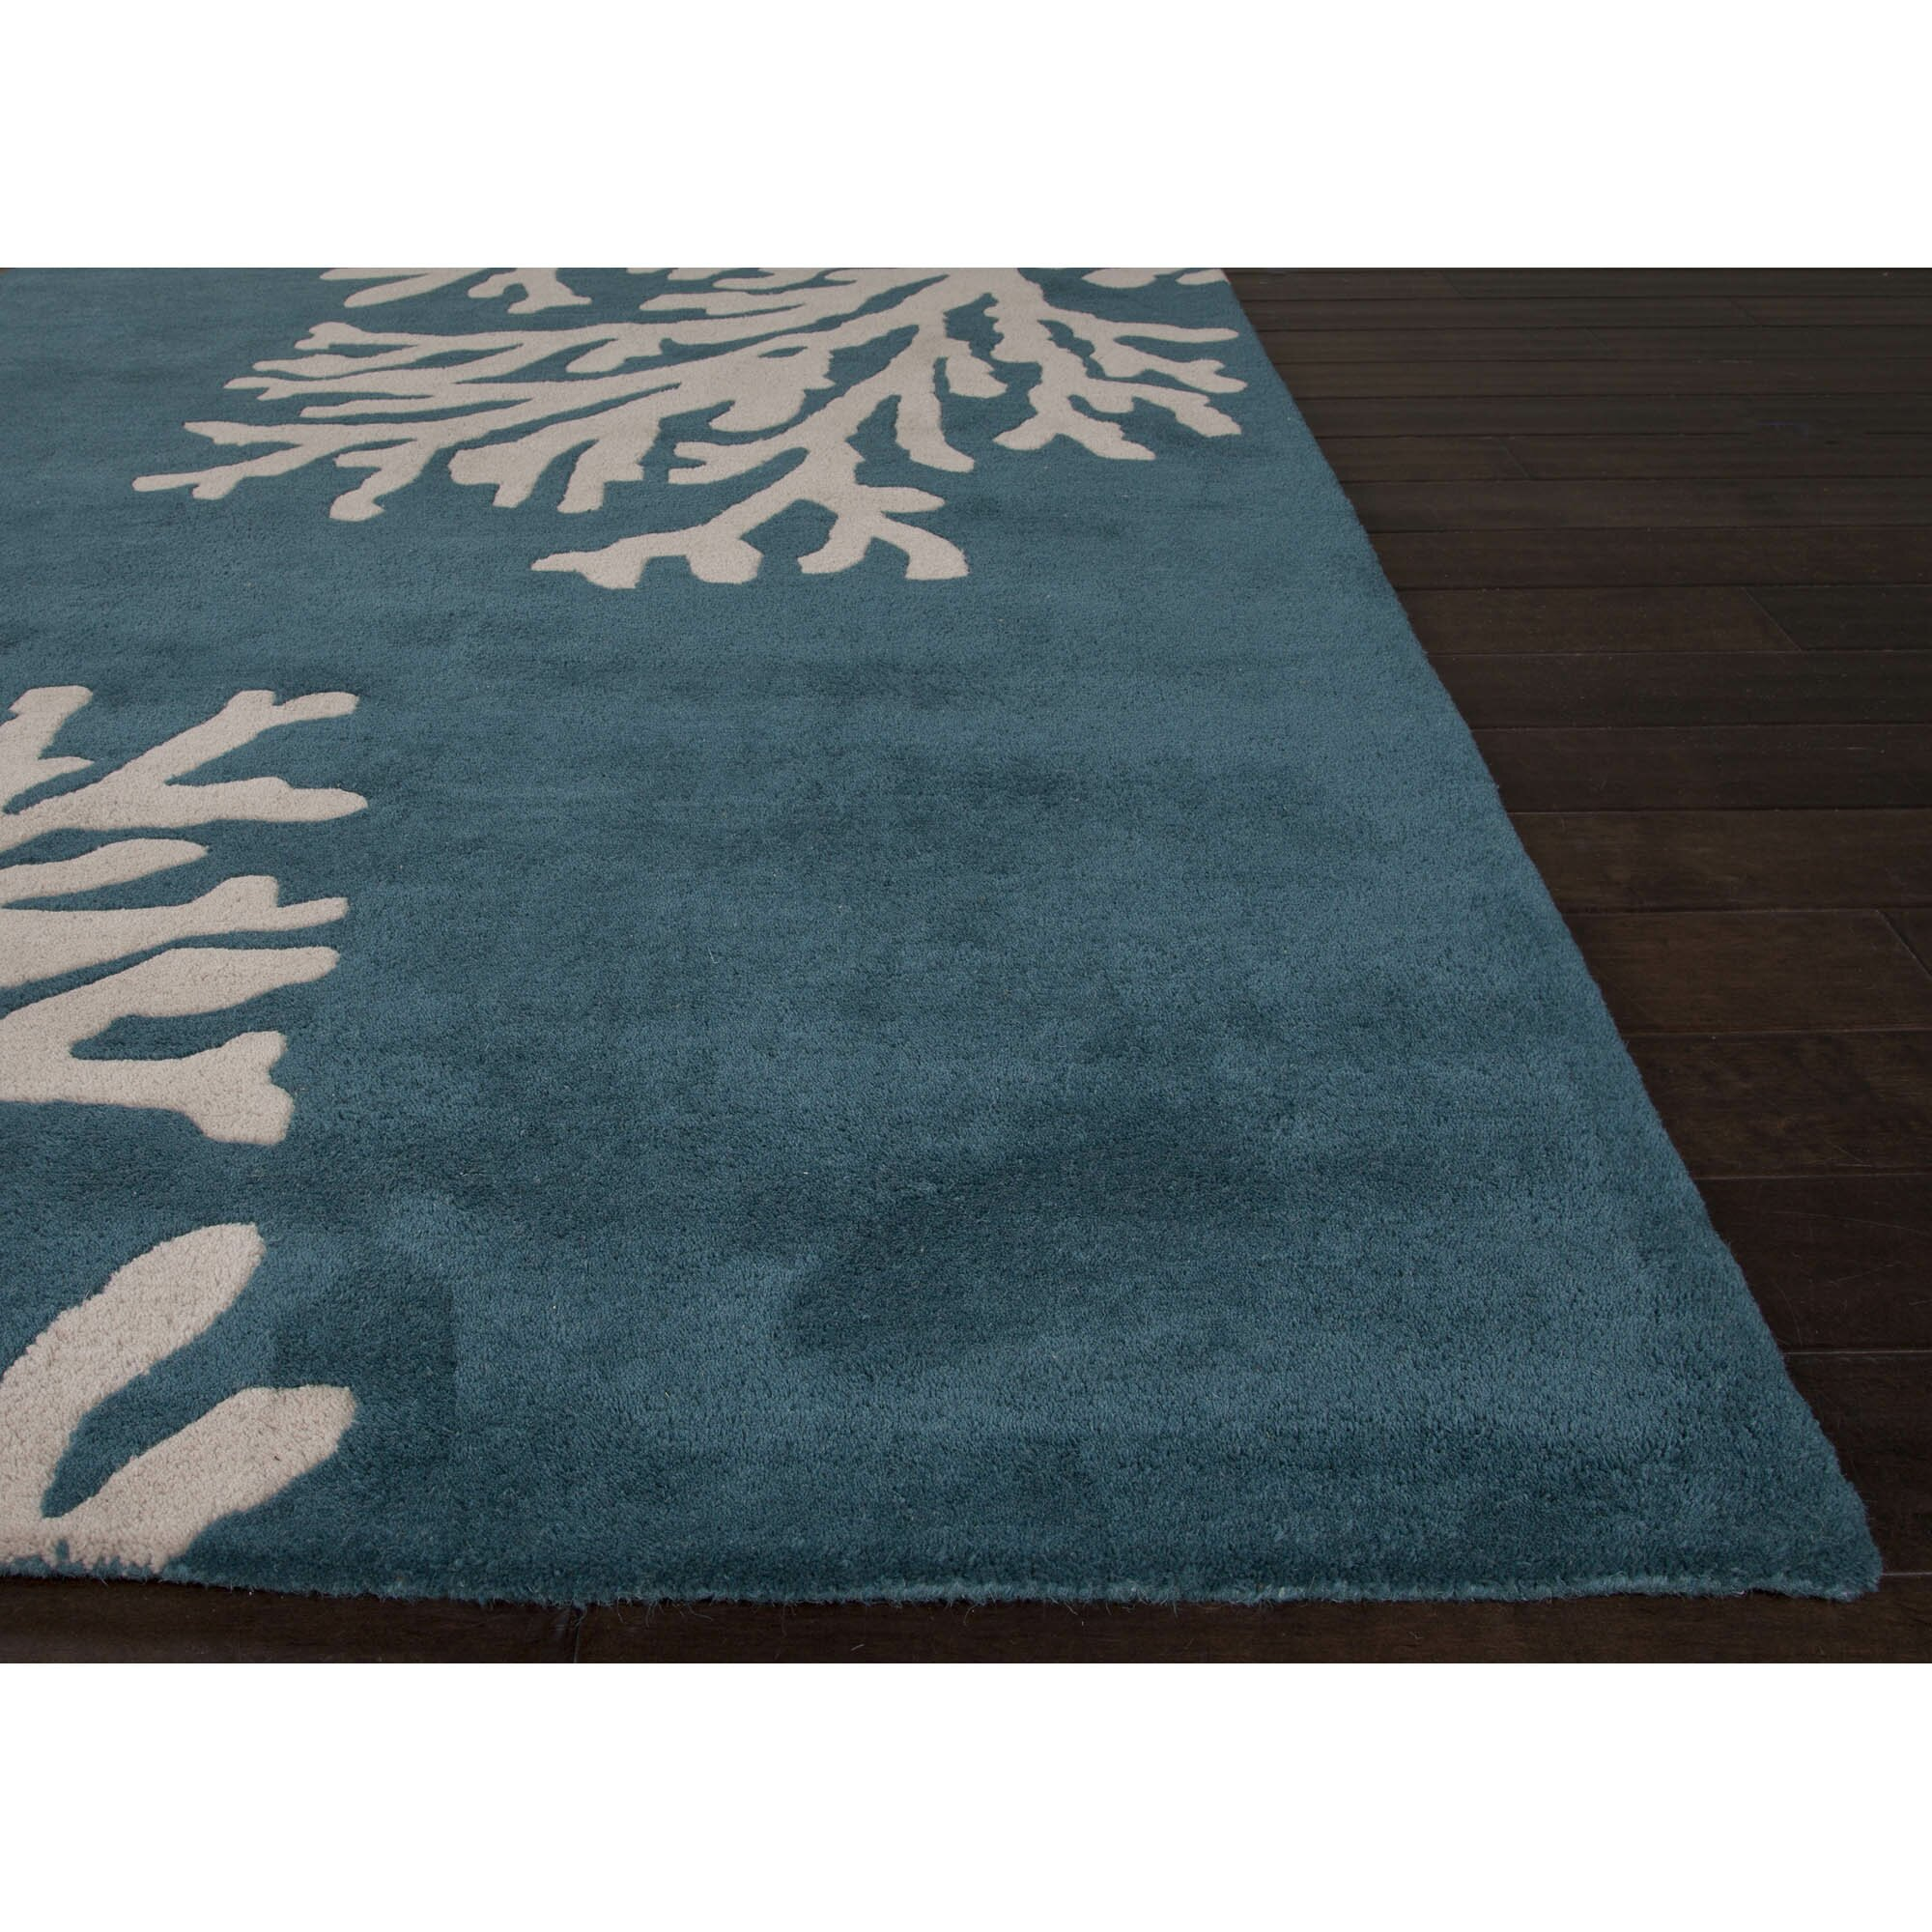 Dog Eating Wool Rug: JaipurLiving Coastal Seaside Wool Hand Tufted Blue & Ivory